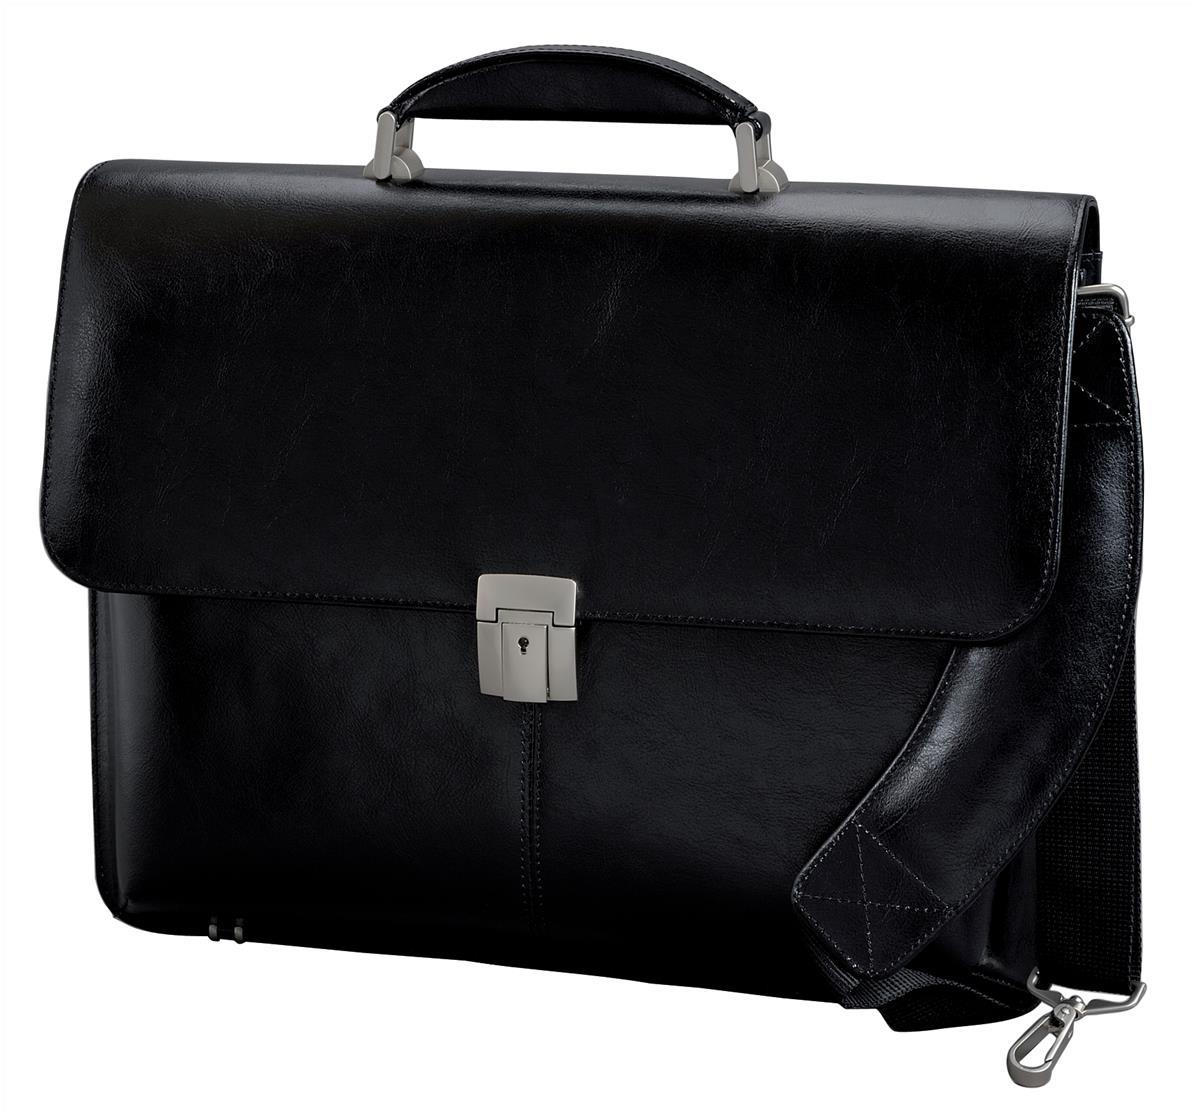 Image for Alassio Briefcase Multi-section with Shoulder Strap Leather Black Ref 47011